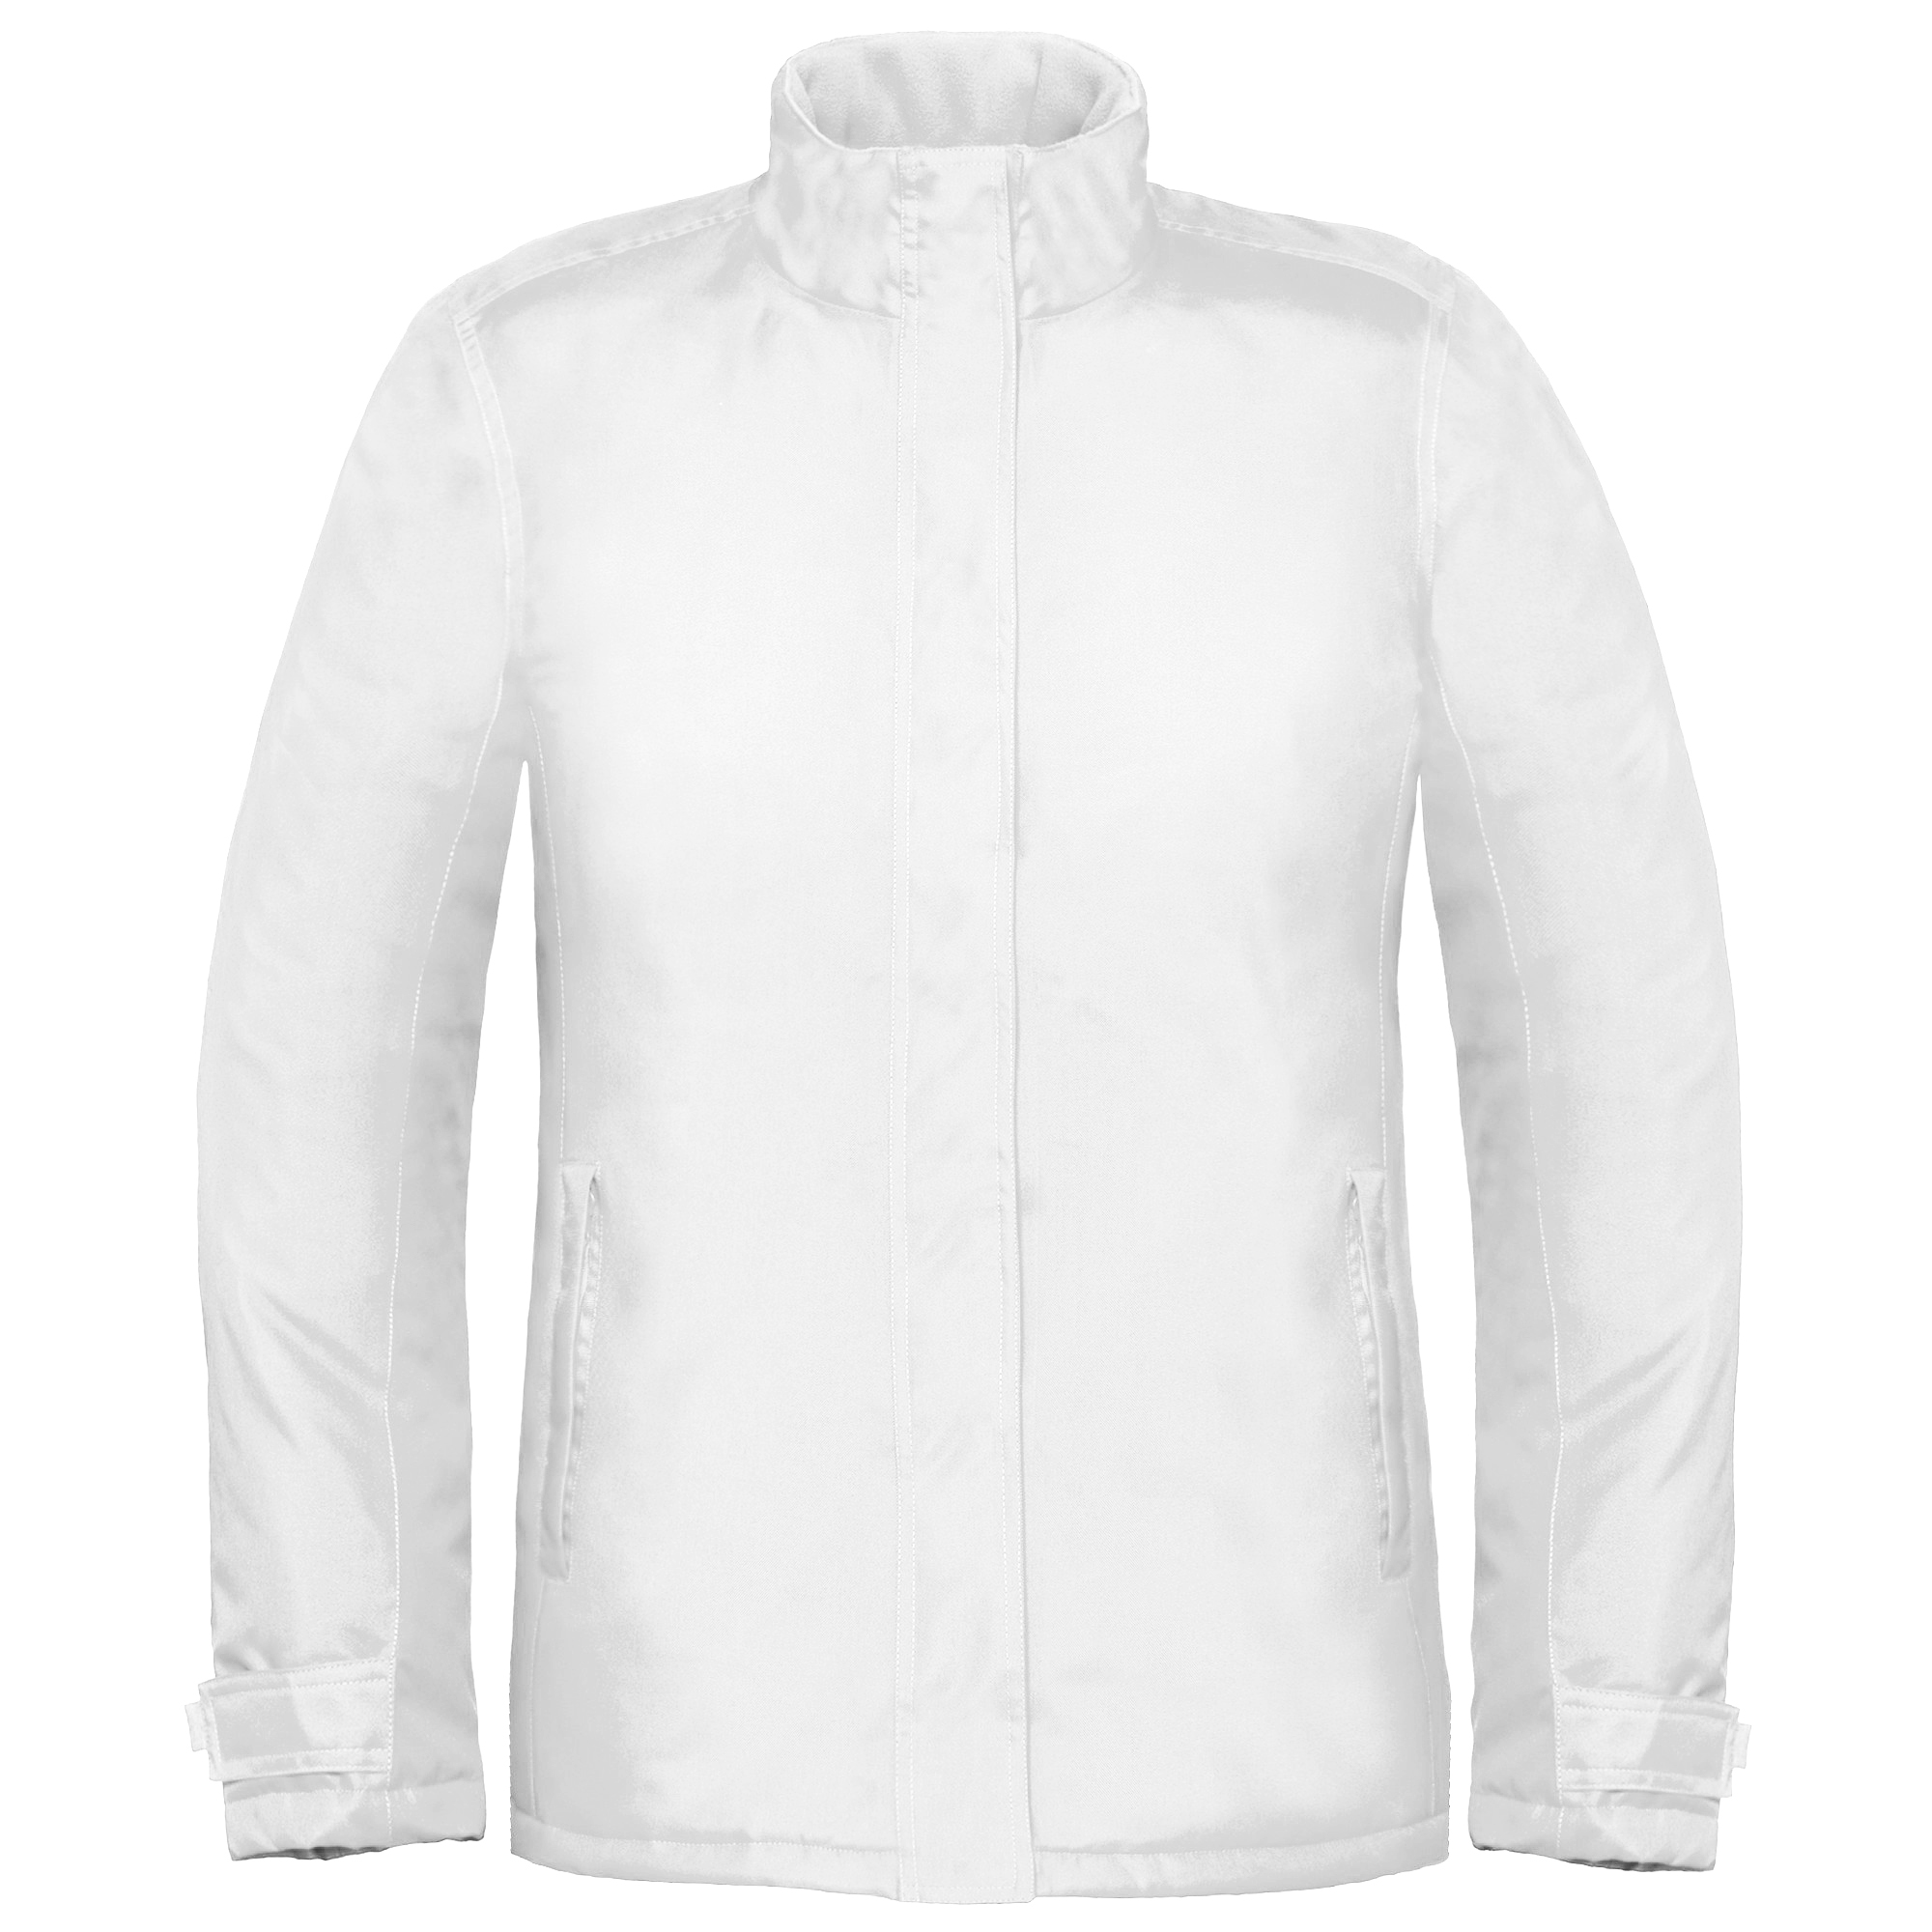 B&C Womens/Ladies Premium Real+ Windproof Waterproof Thermo-Isolated Jacket (S) (White)